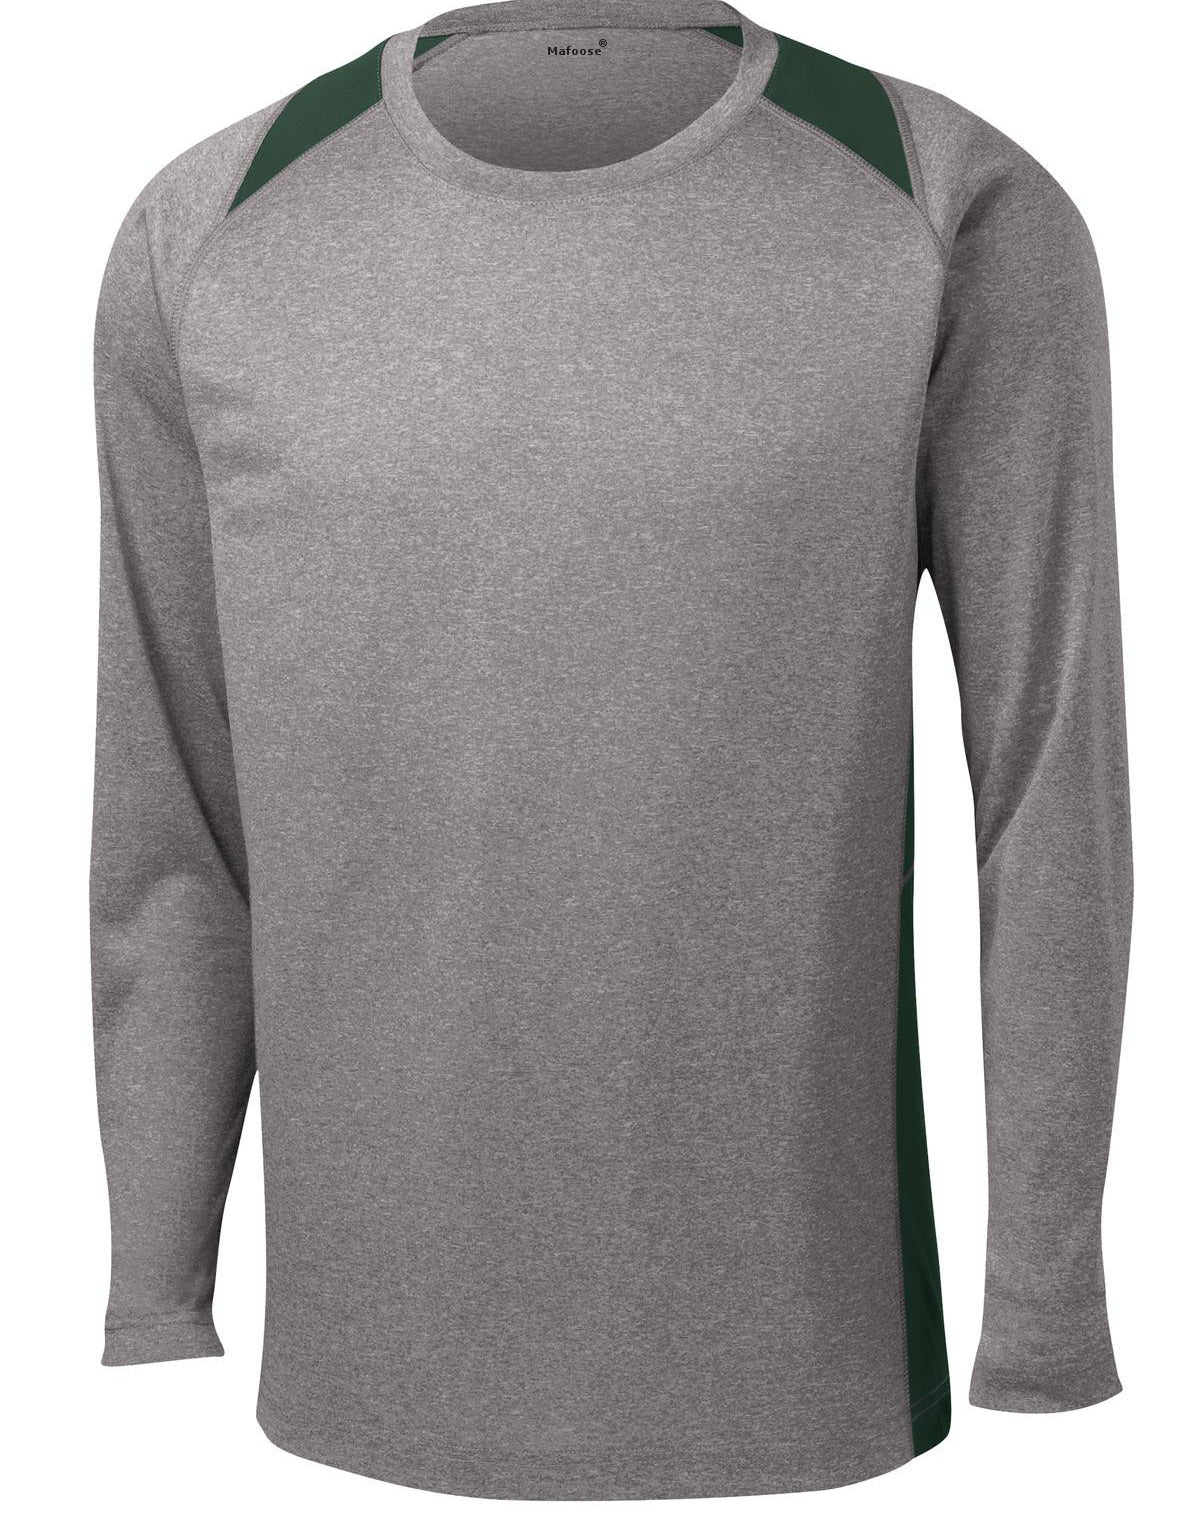 Mafoose Men's Long Sleeve Heather Colorblock Contender Tee Shirt Vintage Heather/ Forest Green-Front